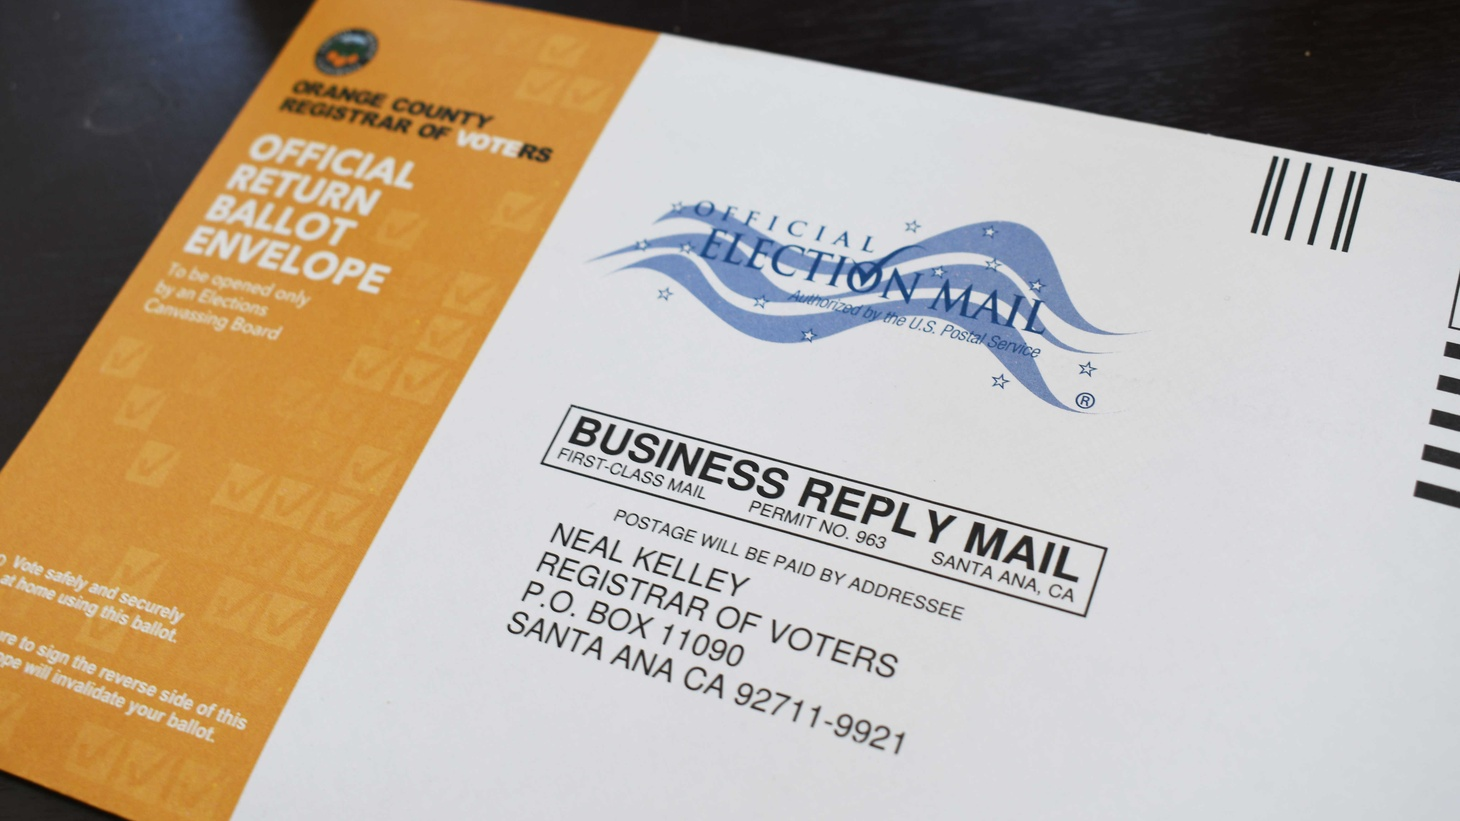 An official Orange County mail-in ballot for the 2020 election.